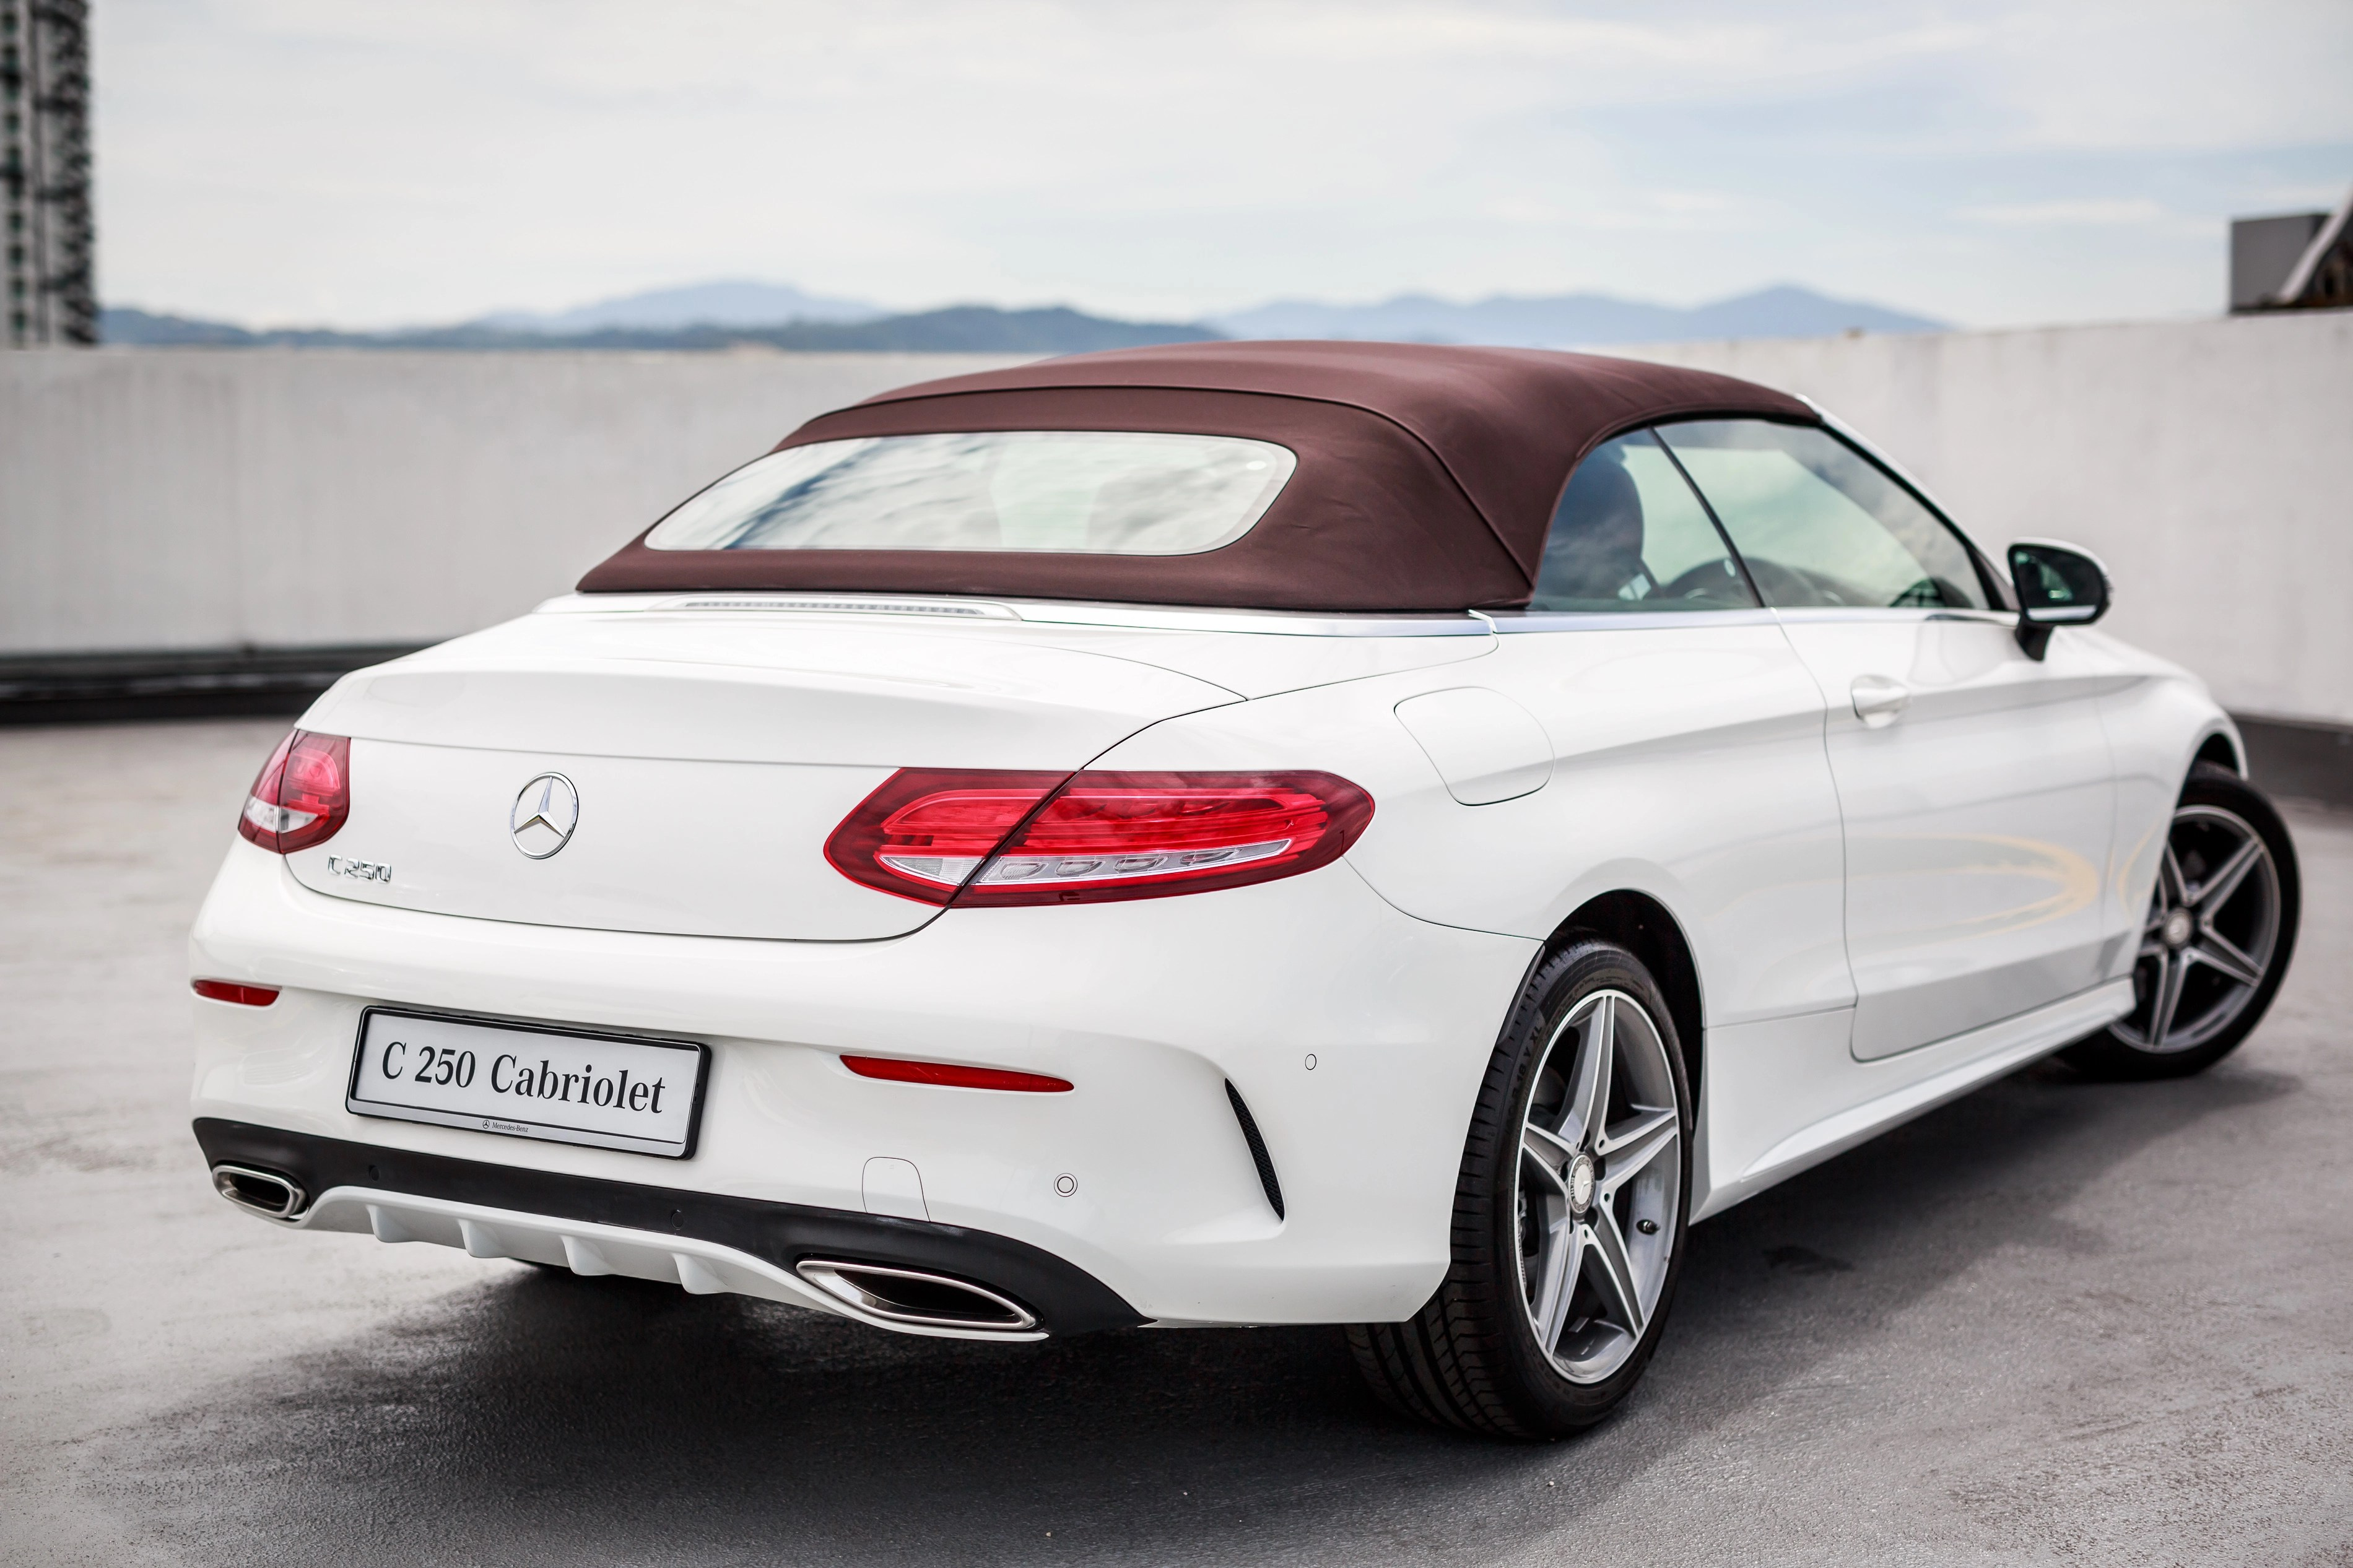 Mercedes Benz C Class Cabriolet Launched In Malaysia